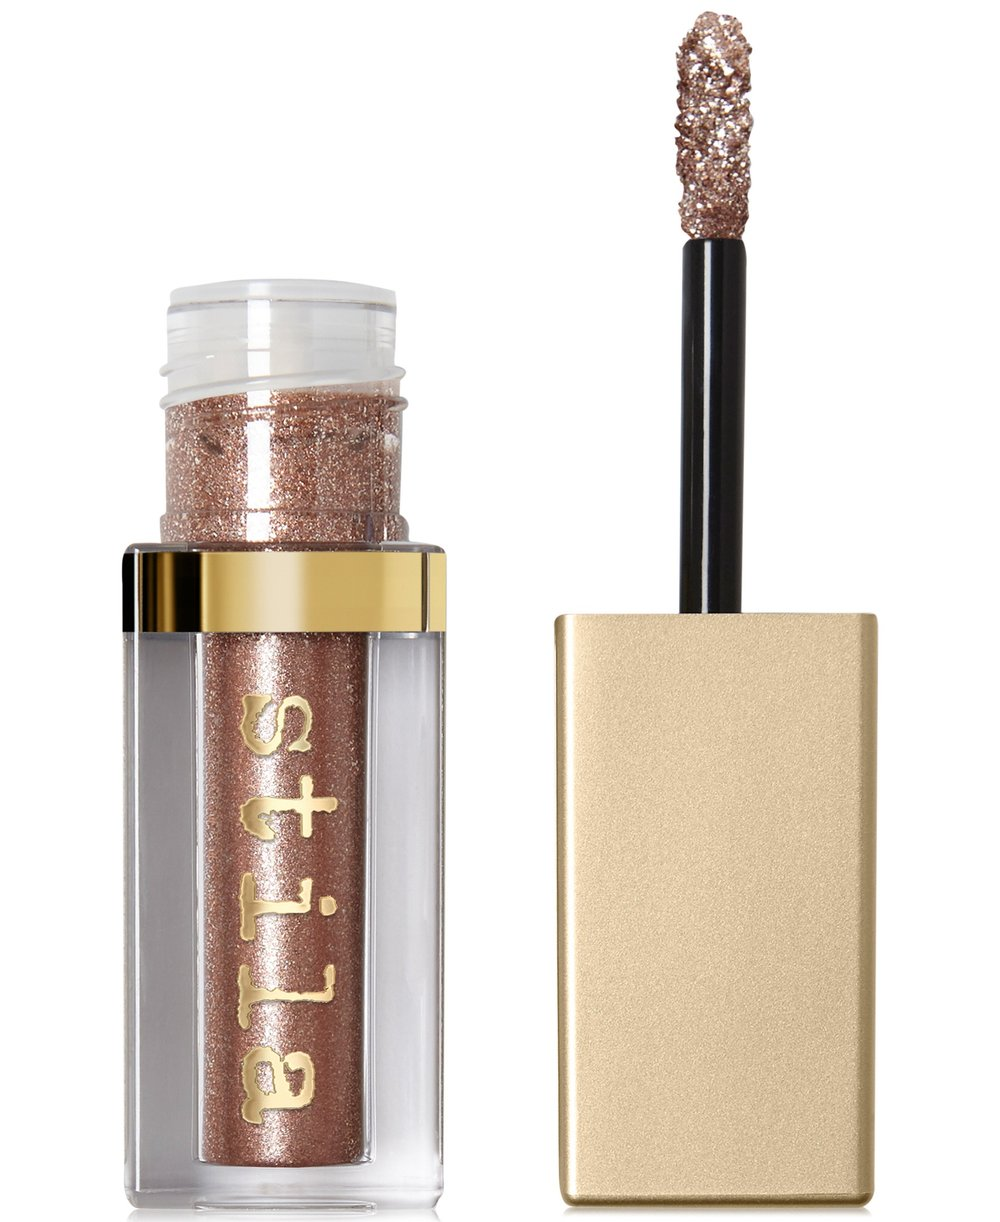 Stila Magnificent Metals Glitter & Glow Liquid Eye Shadow - $24.00.jpg